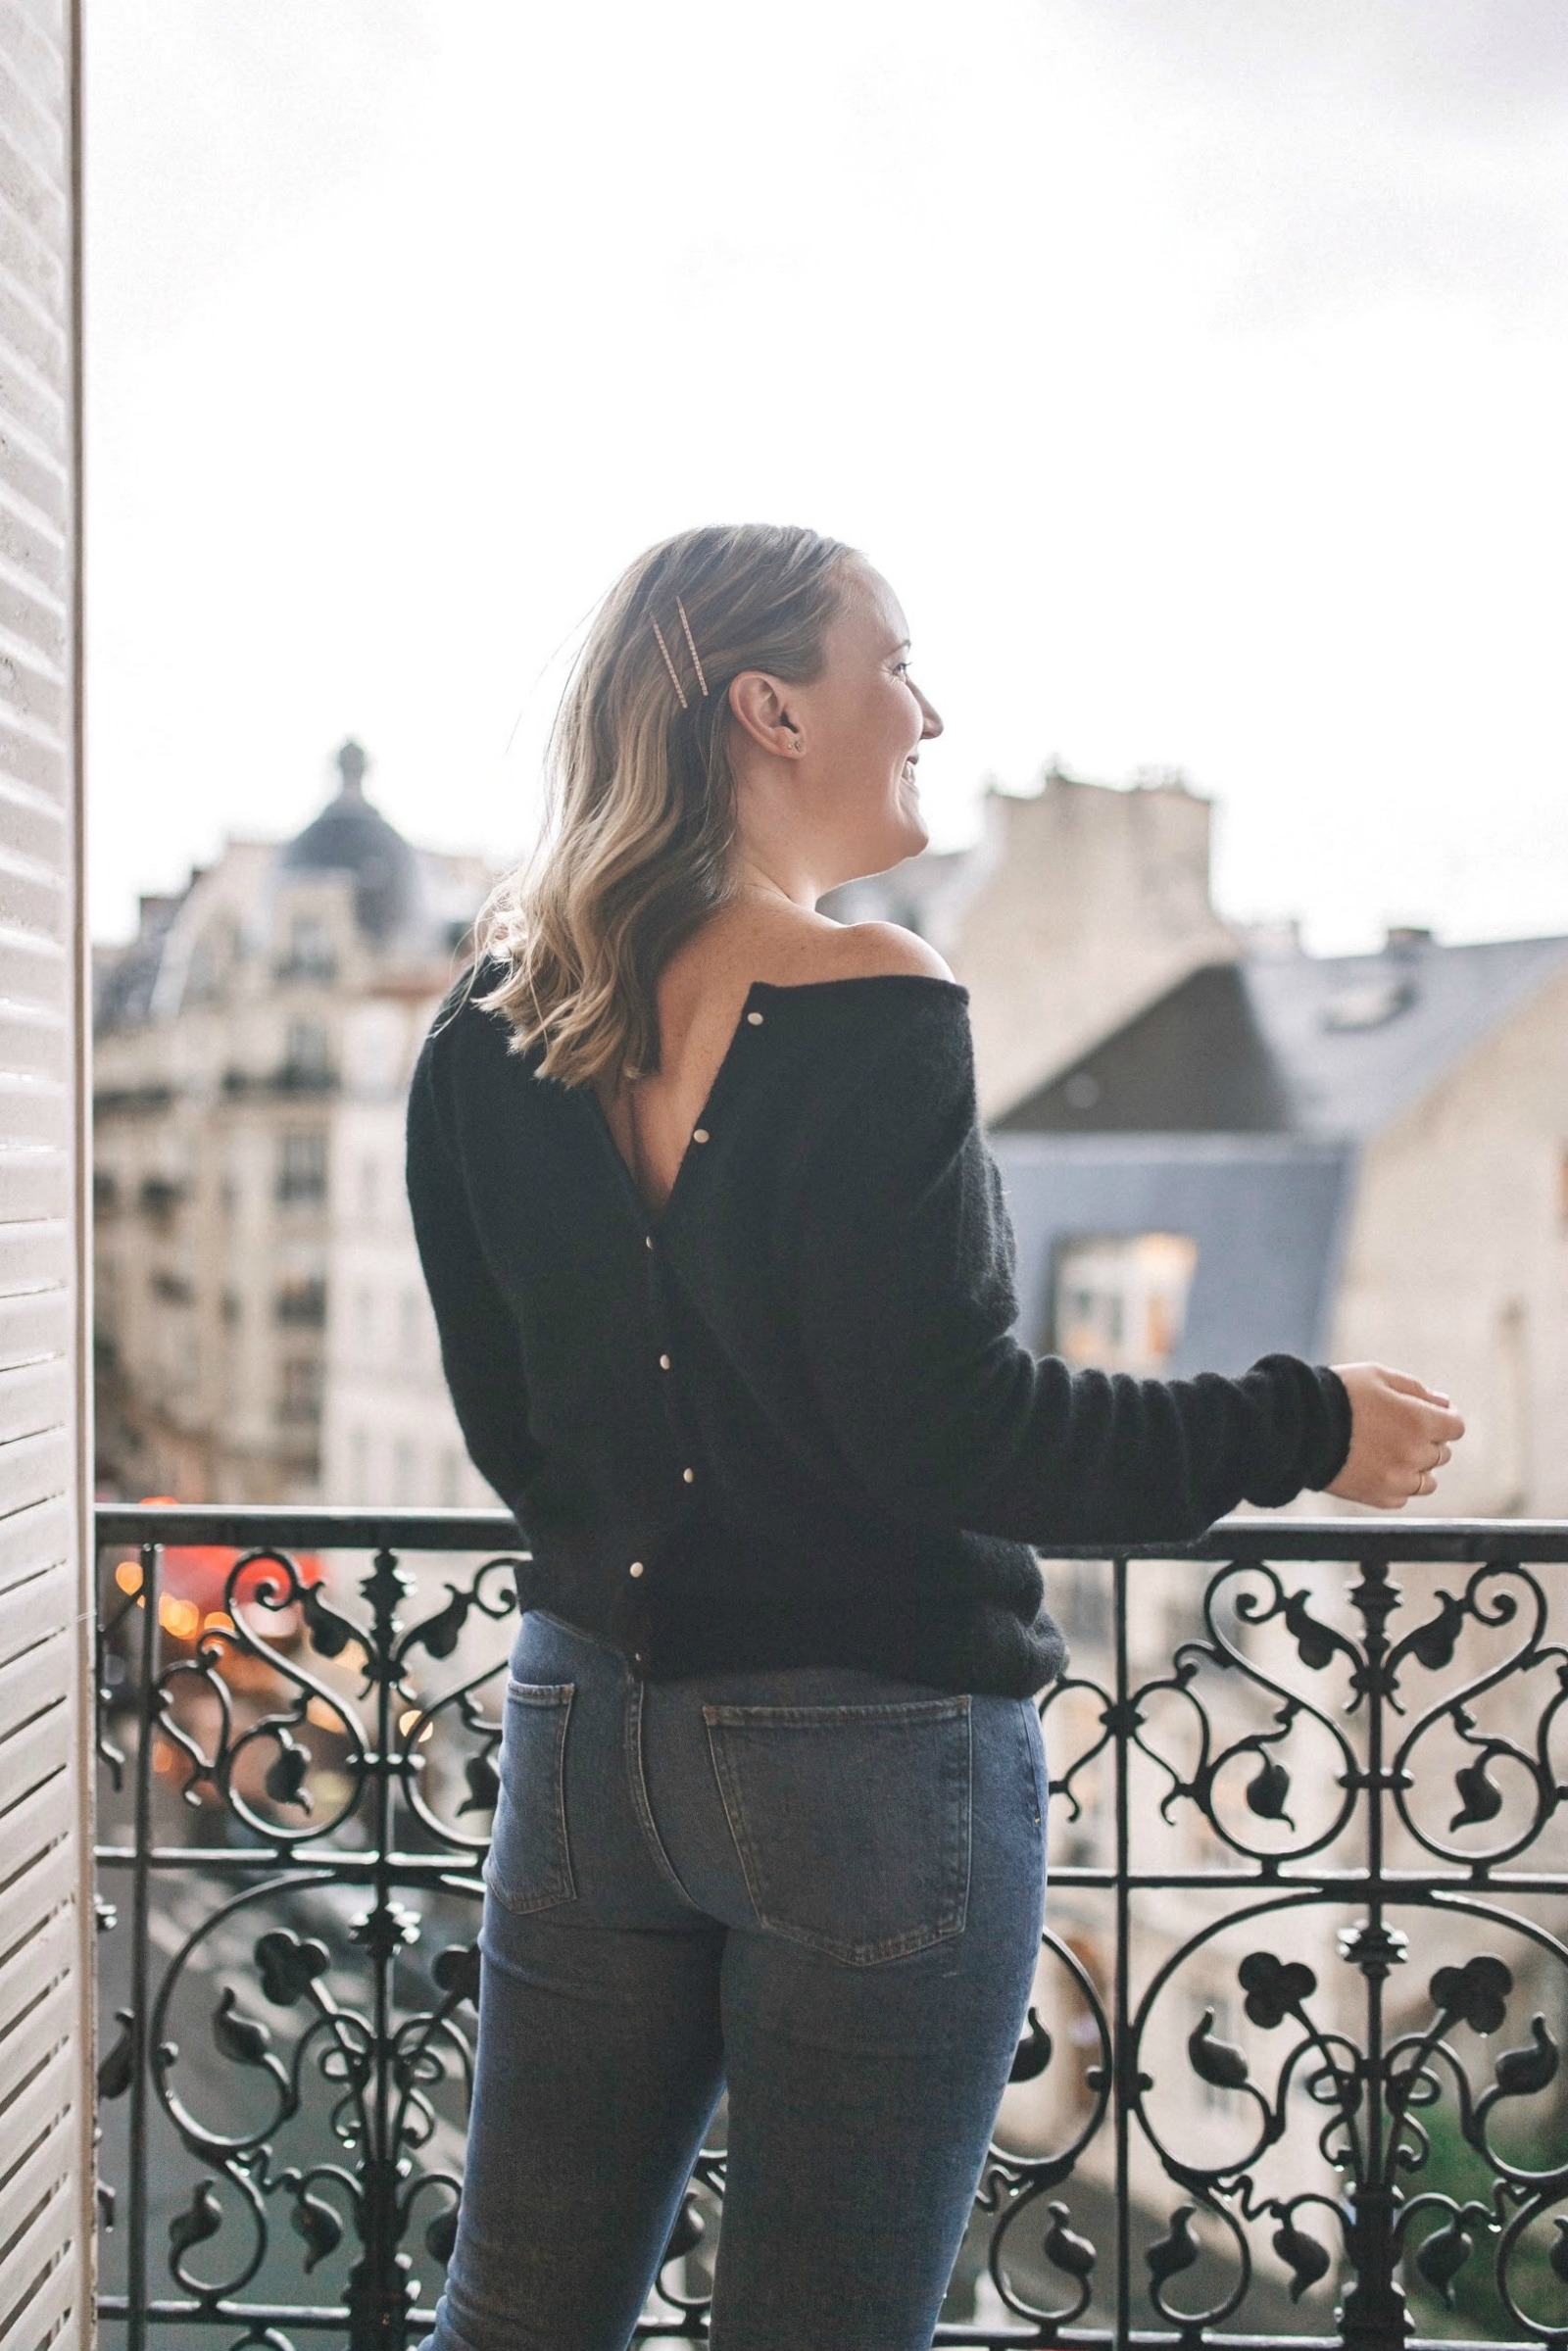 Parisian Balcony I wit & whimsy